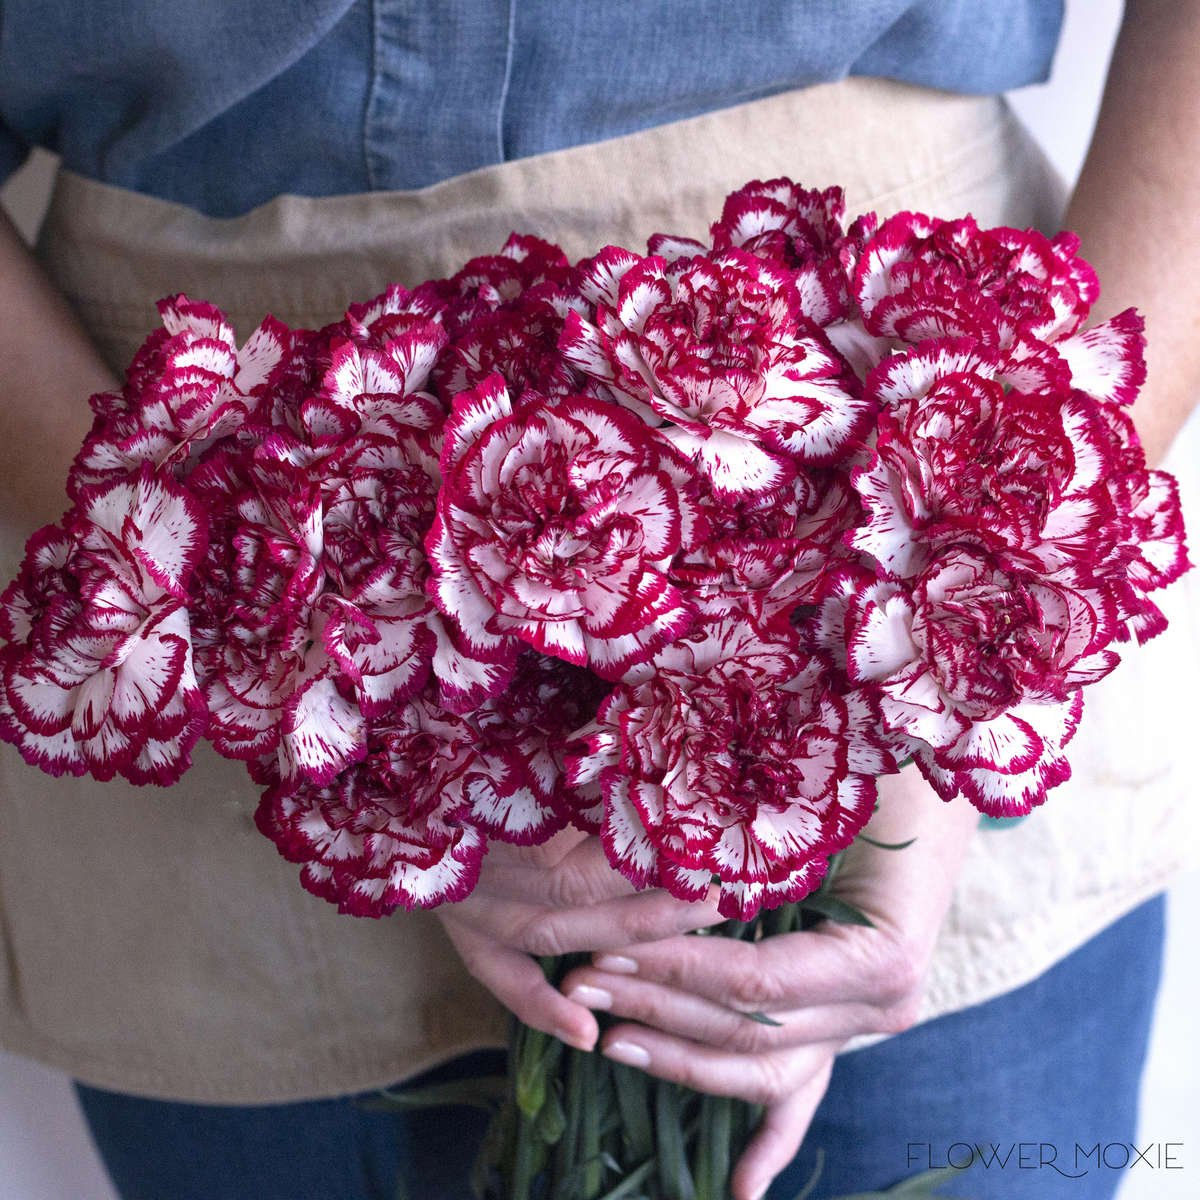 red white carnation,, two color carnation, dual tone carnation, bitonal carnation, diy bride, flower moxie, diy wedding, wedding bouquet ideas, affordable wedding flowers, baby shower ideas, baby shower diy, diy baby shower, bridal luncheon ideas, host a bridal shower, host a bridal luncheon, bridal shower ideas, bridal shower flowers cheap